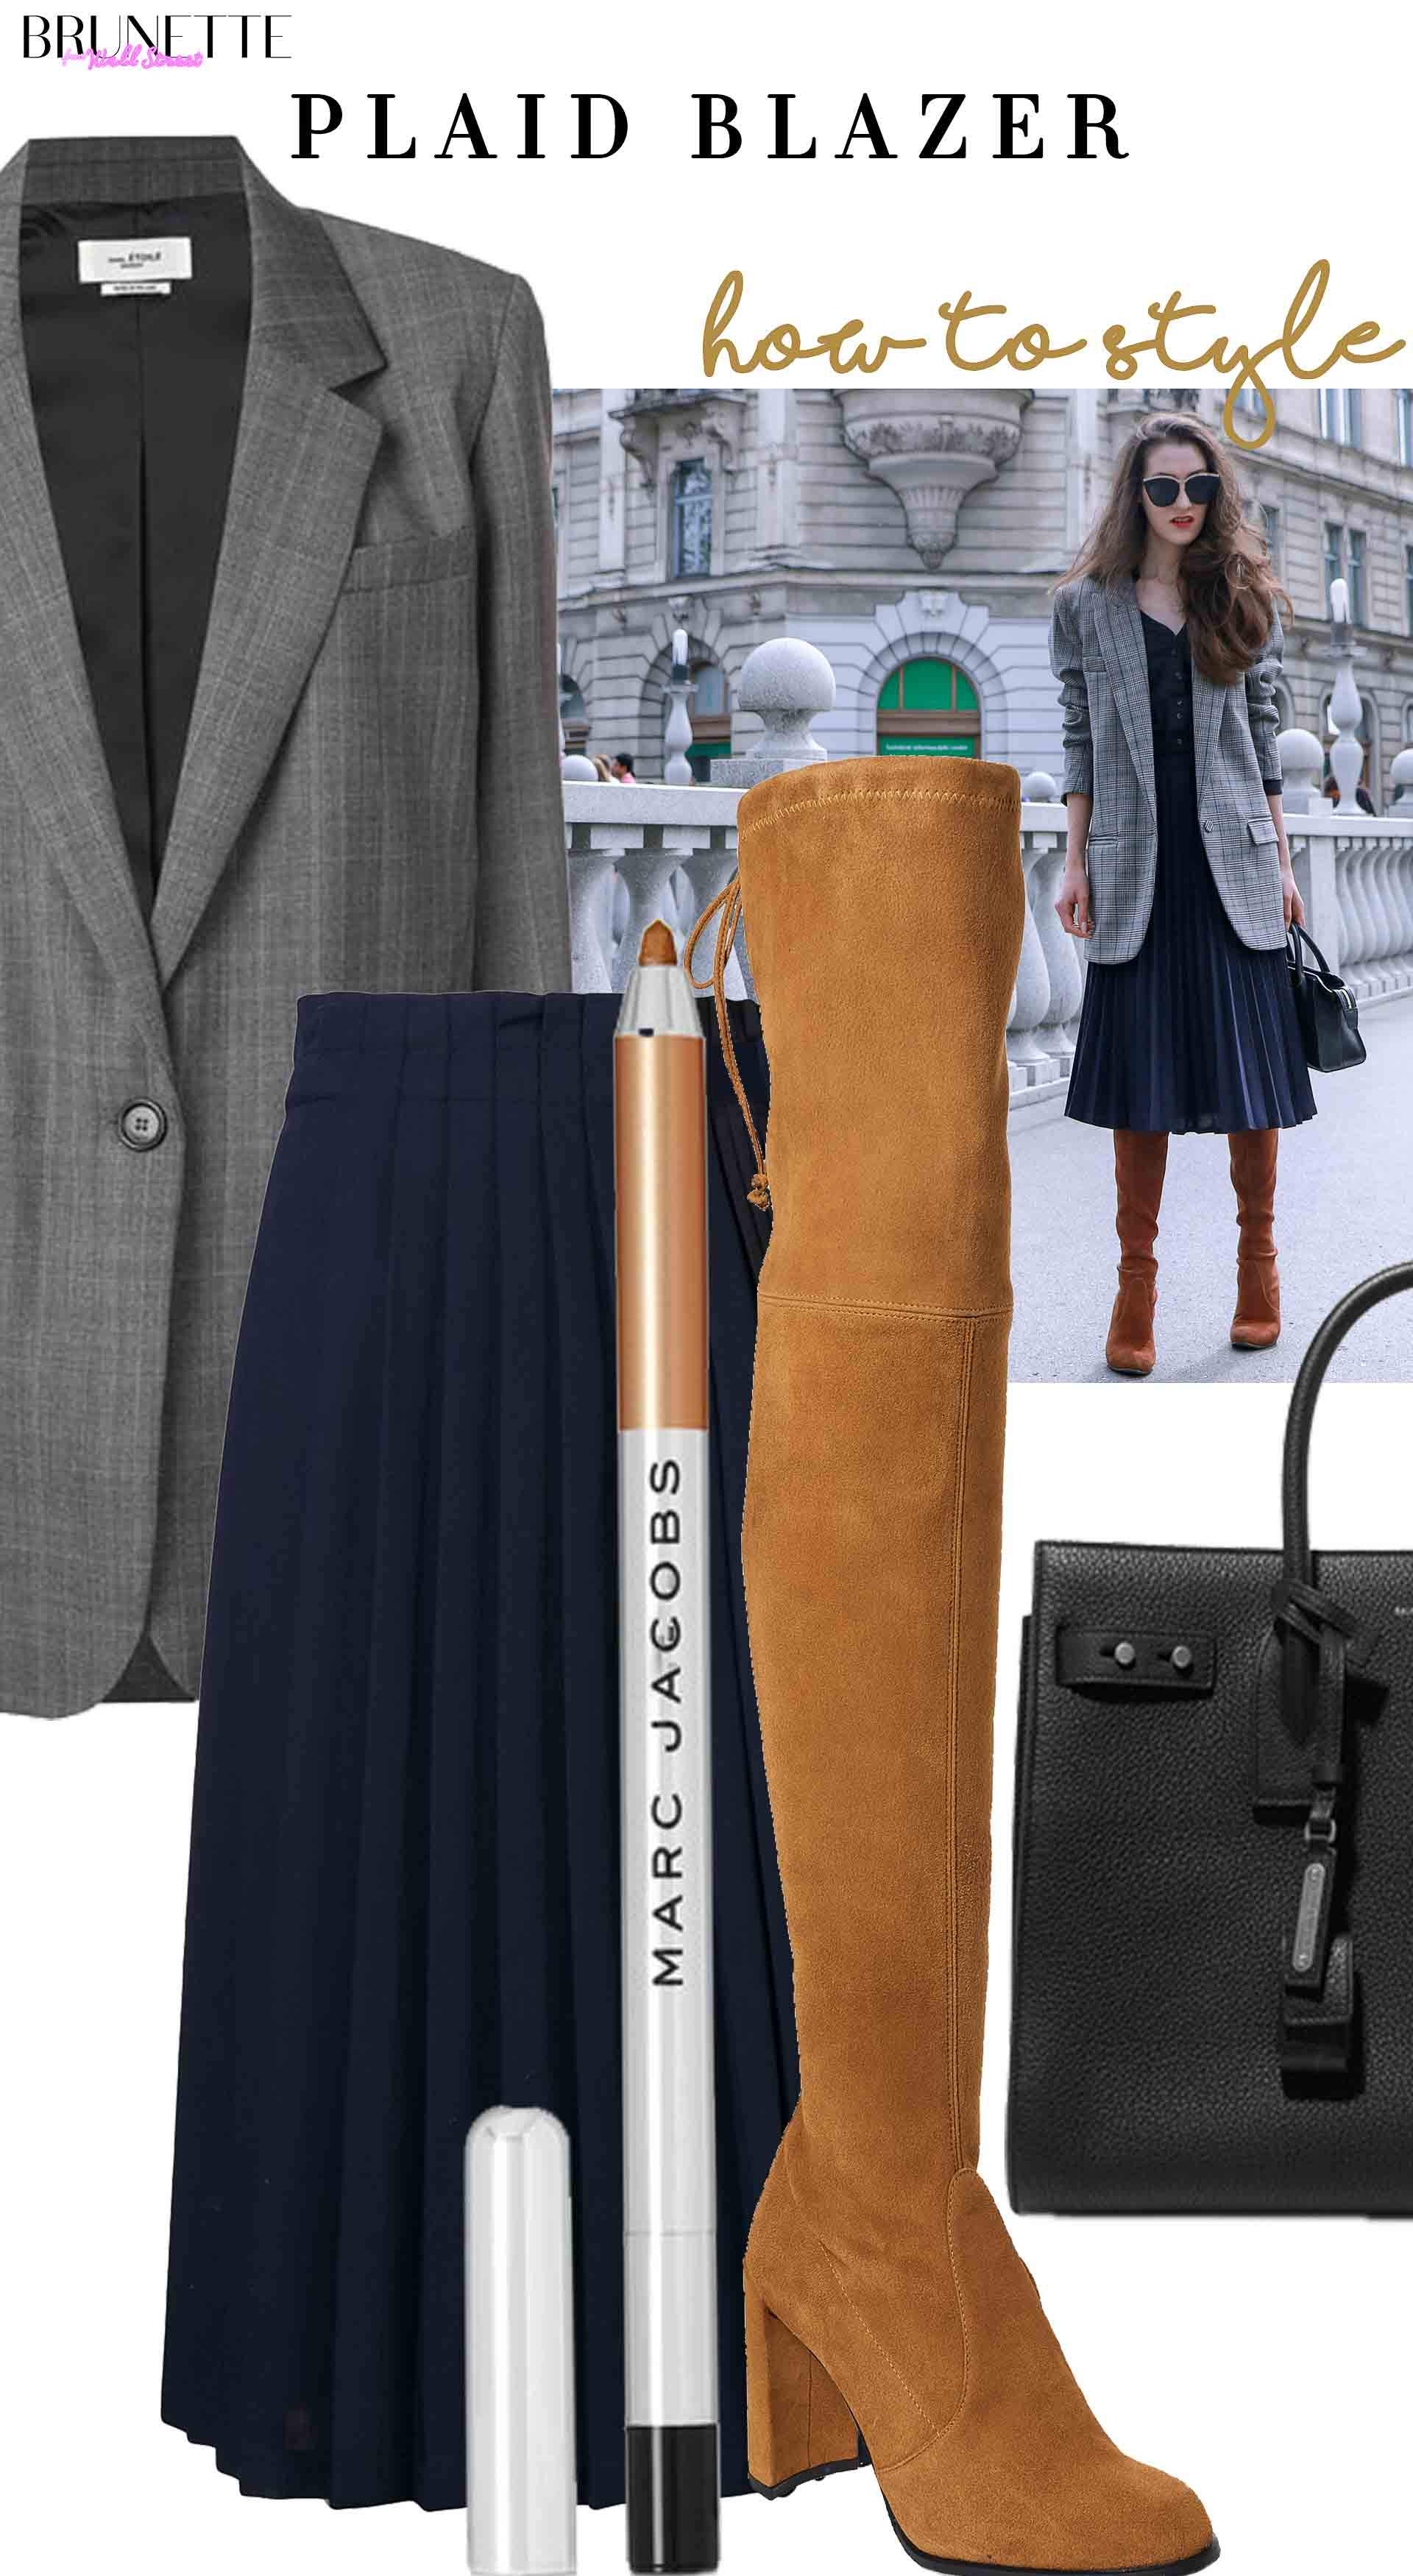 Stuart Weitzman highland over the knee boots, blue midi pleated dress, Marc Jacobs Beauty eyeliner, grey checked blazer, Saint Laurent tote bag with text overlay how to style paid blazer